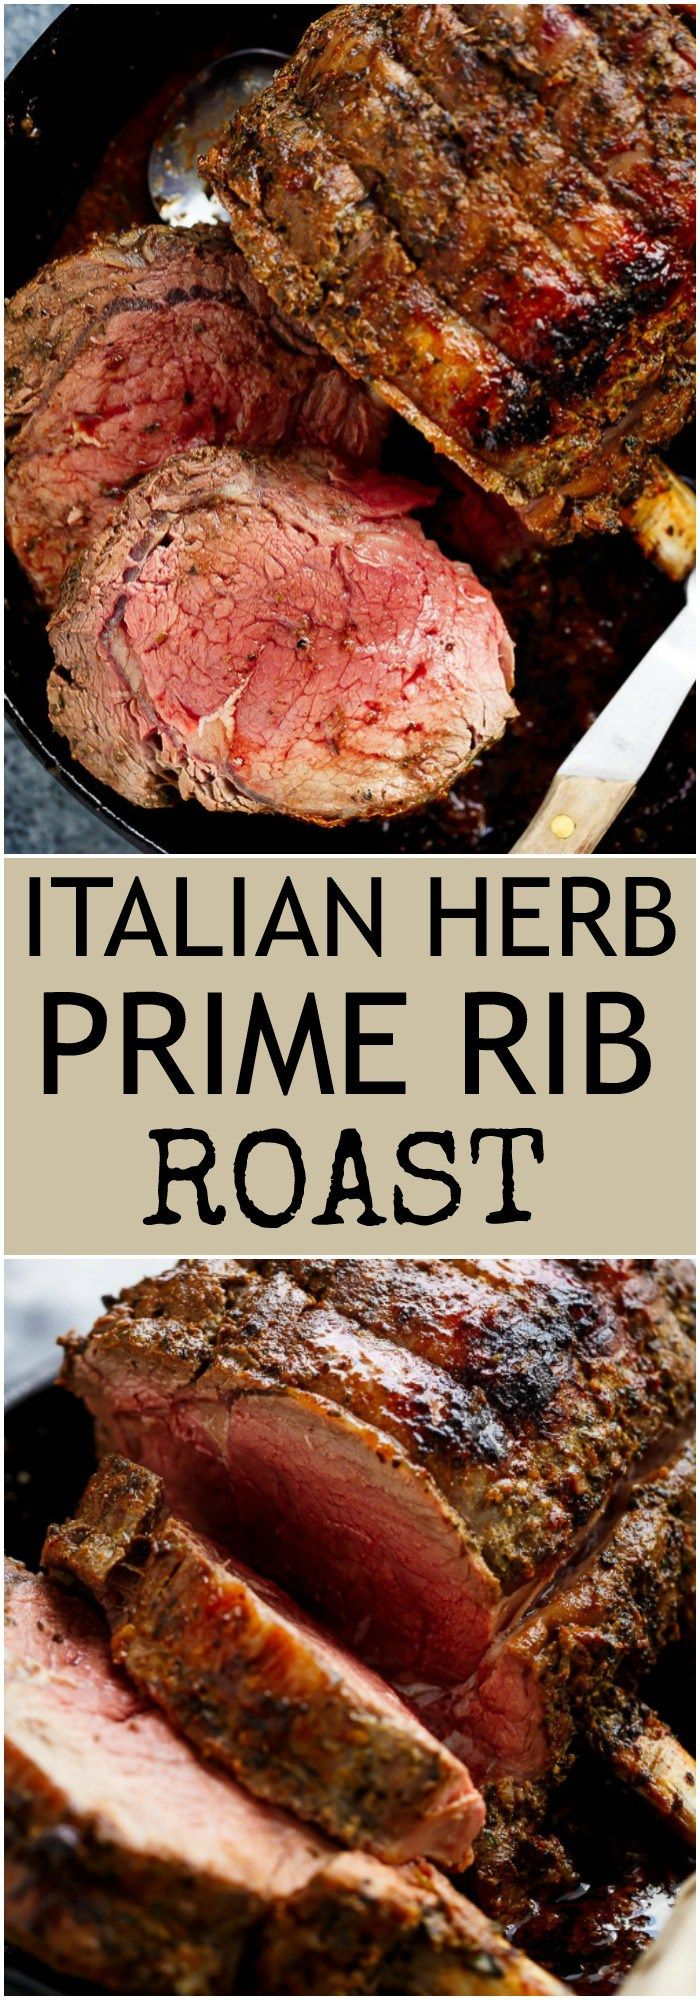 Italian Herb Prime Rib Roast is the perfect Christmas dinner, full of flavour and ready in under one hour! | https://cafedelites.com